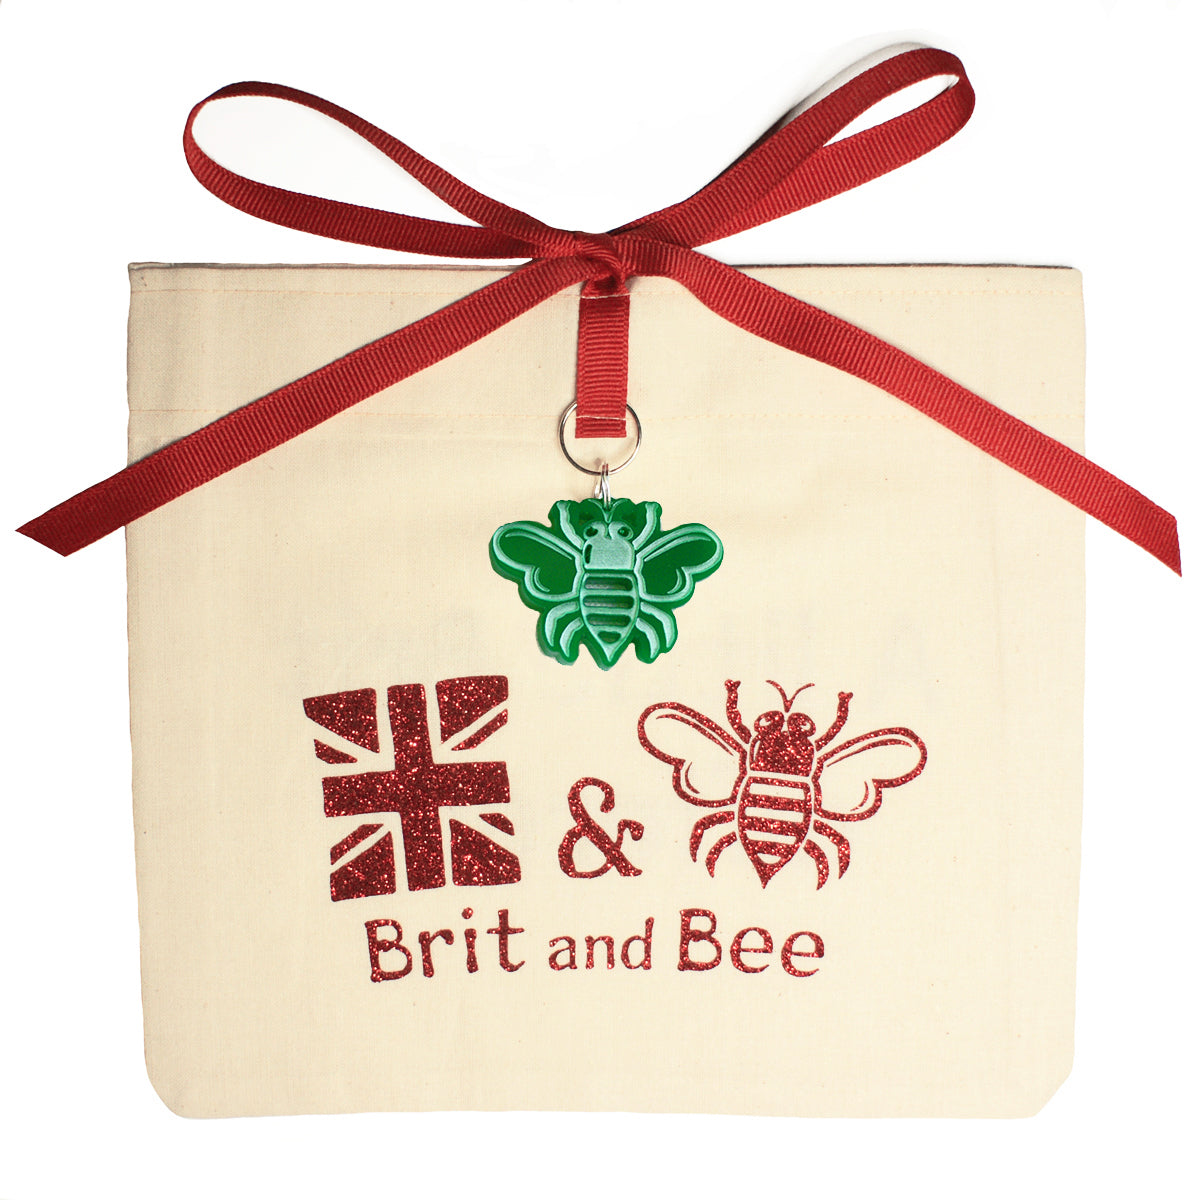 Brit and Bee Sorority Ribbon Year Decal - Alpha Gamma Delta